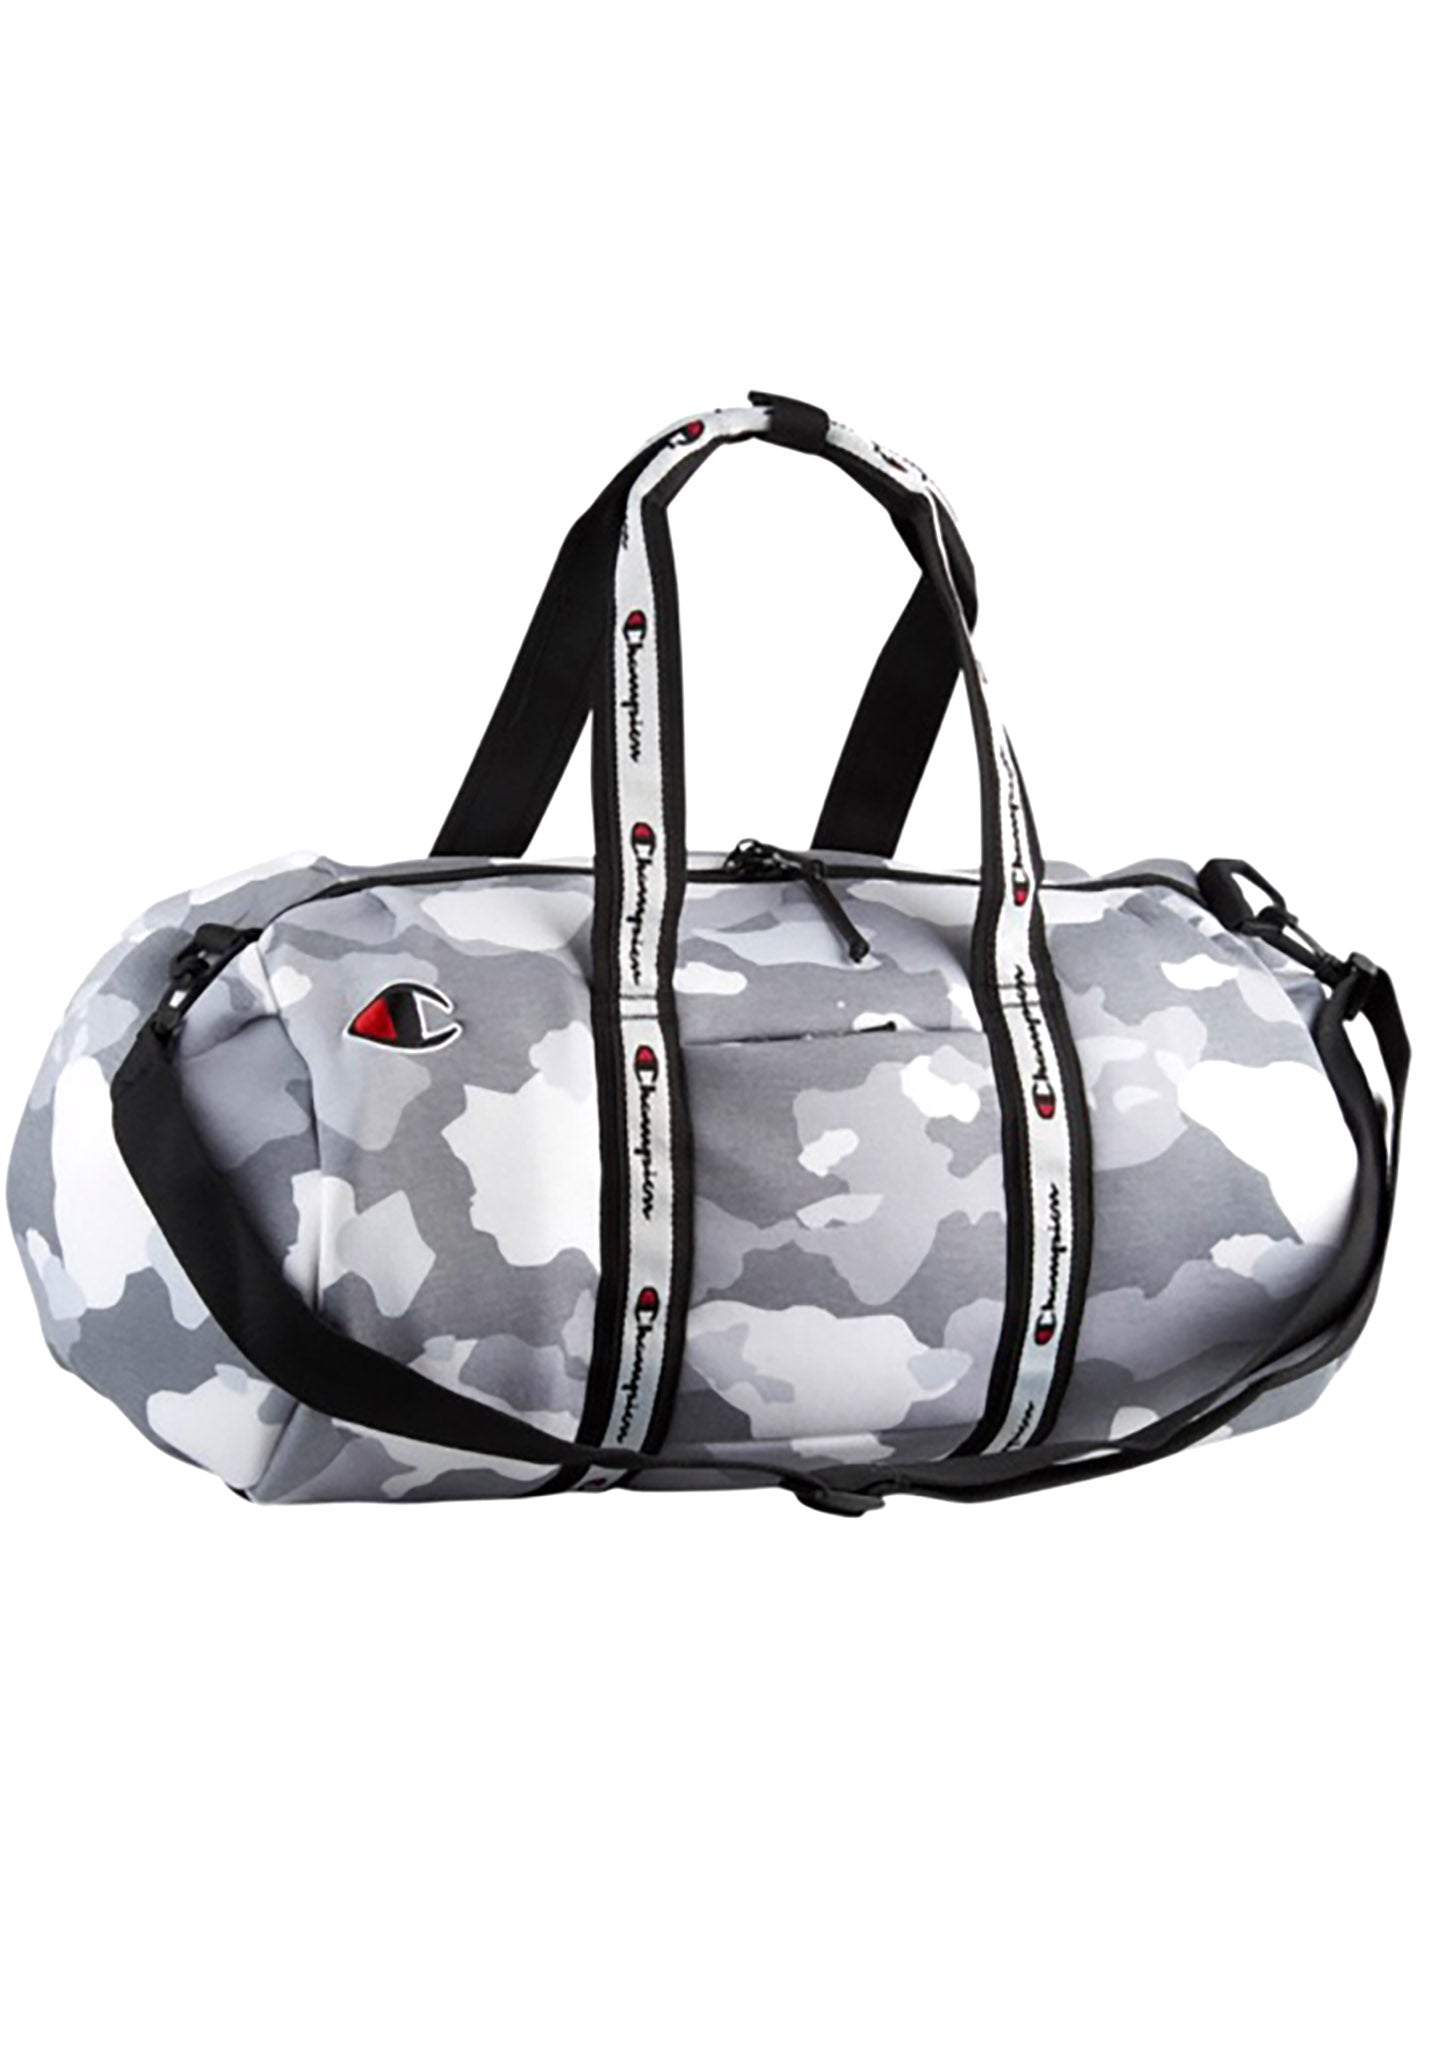 CHAMPION   Shop Champion Elect Duffle Bag in Grey Camo at ... 9fe5bf924a